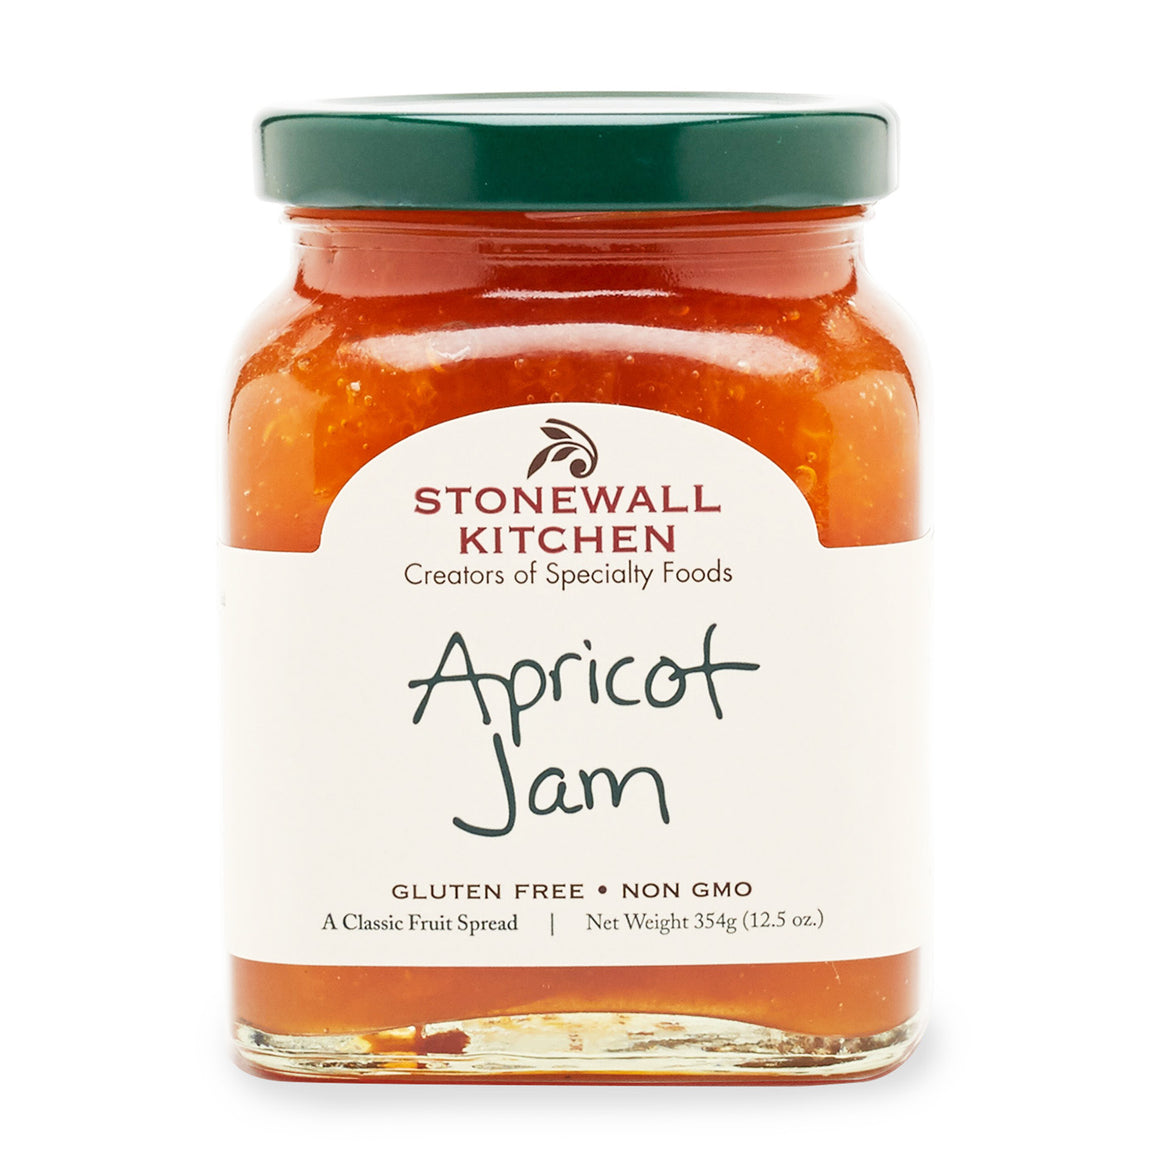 Apricot Jam by Stonewall Kitchen